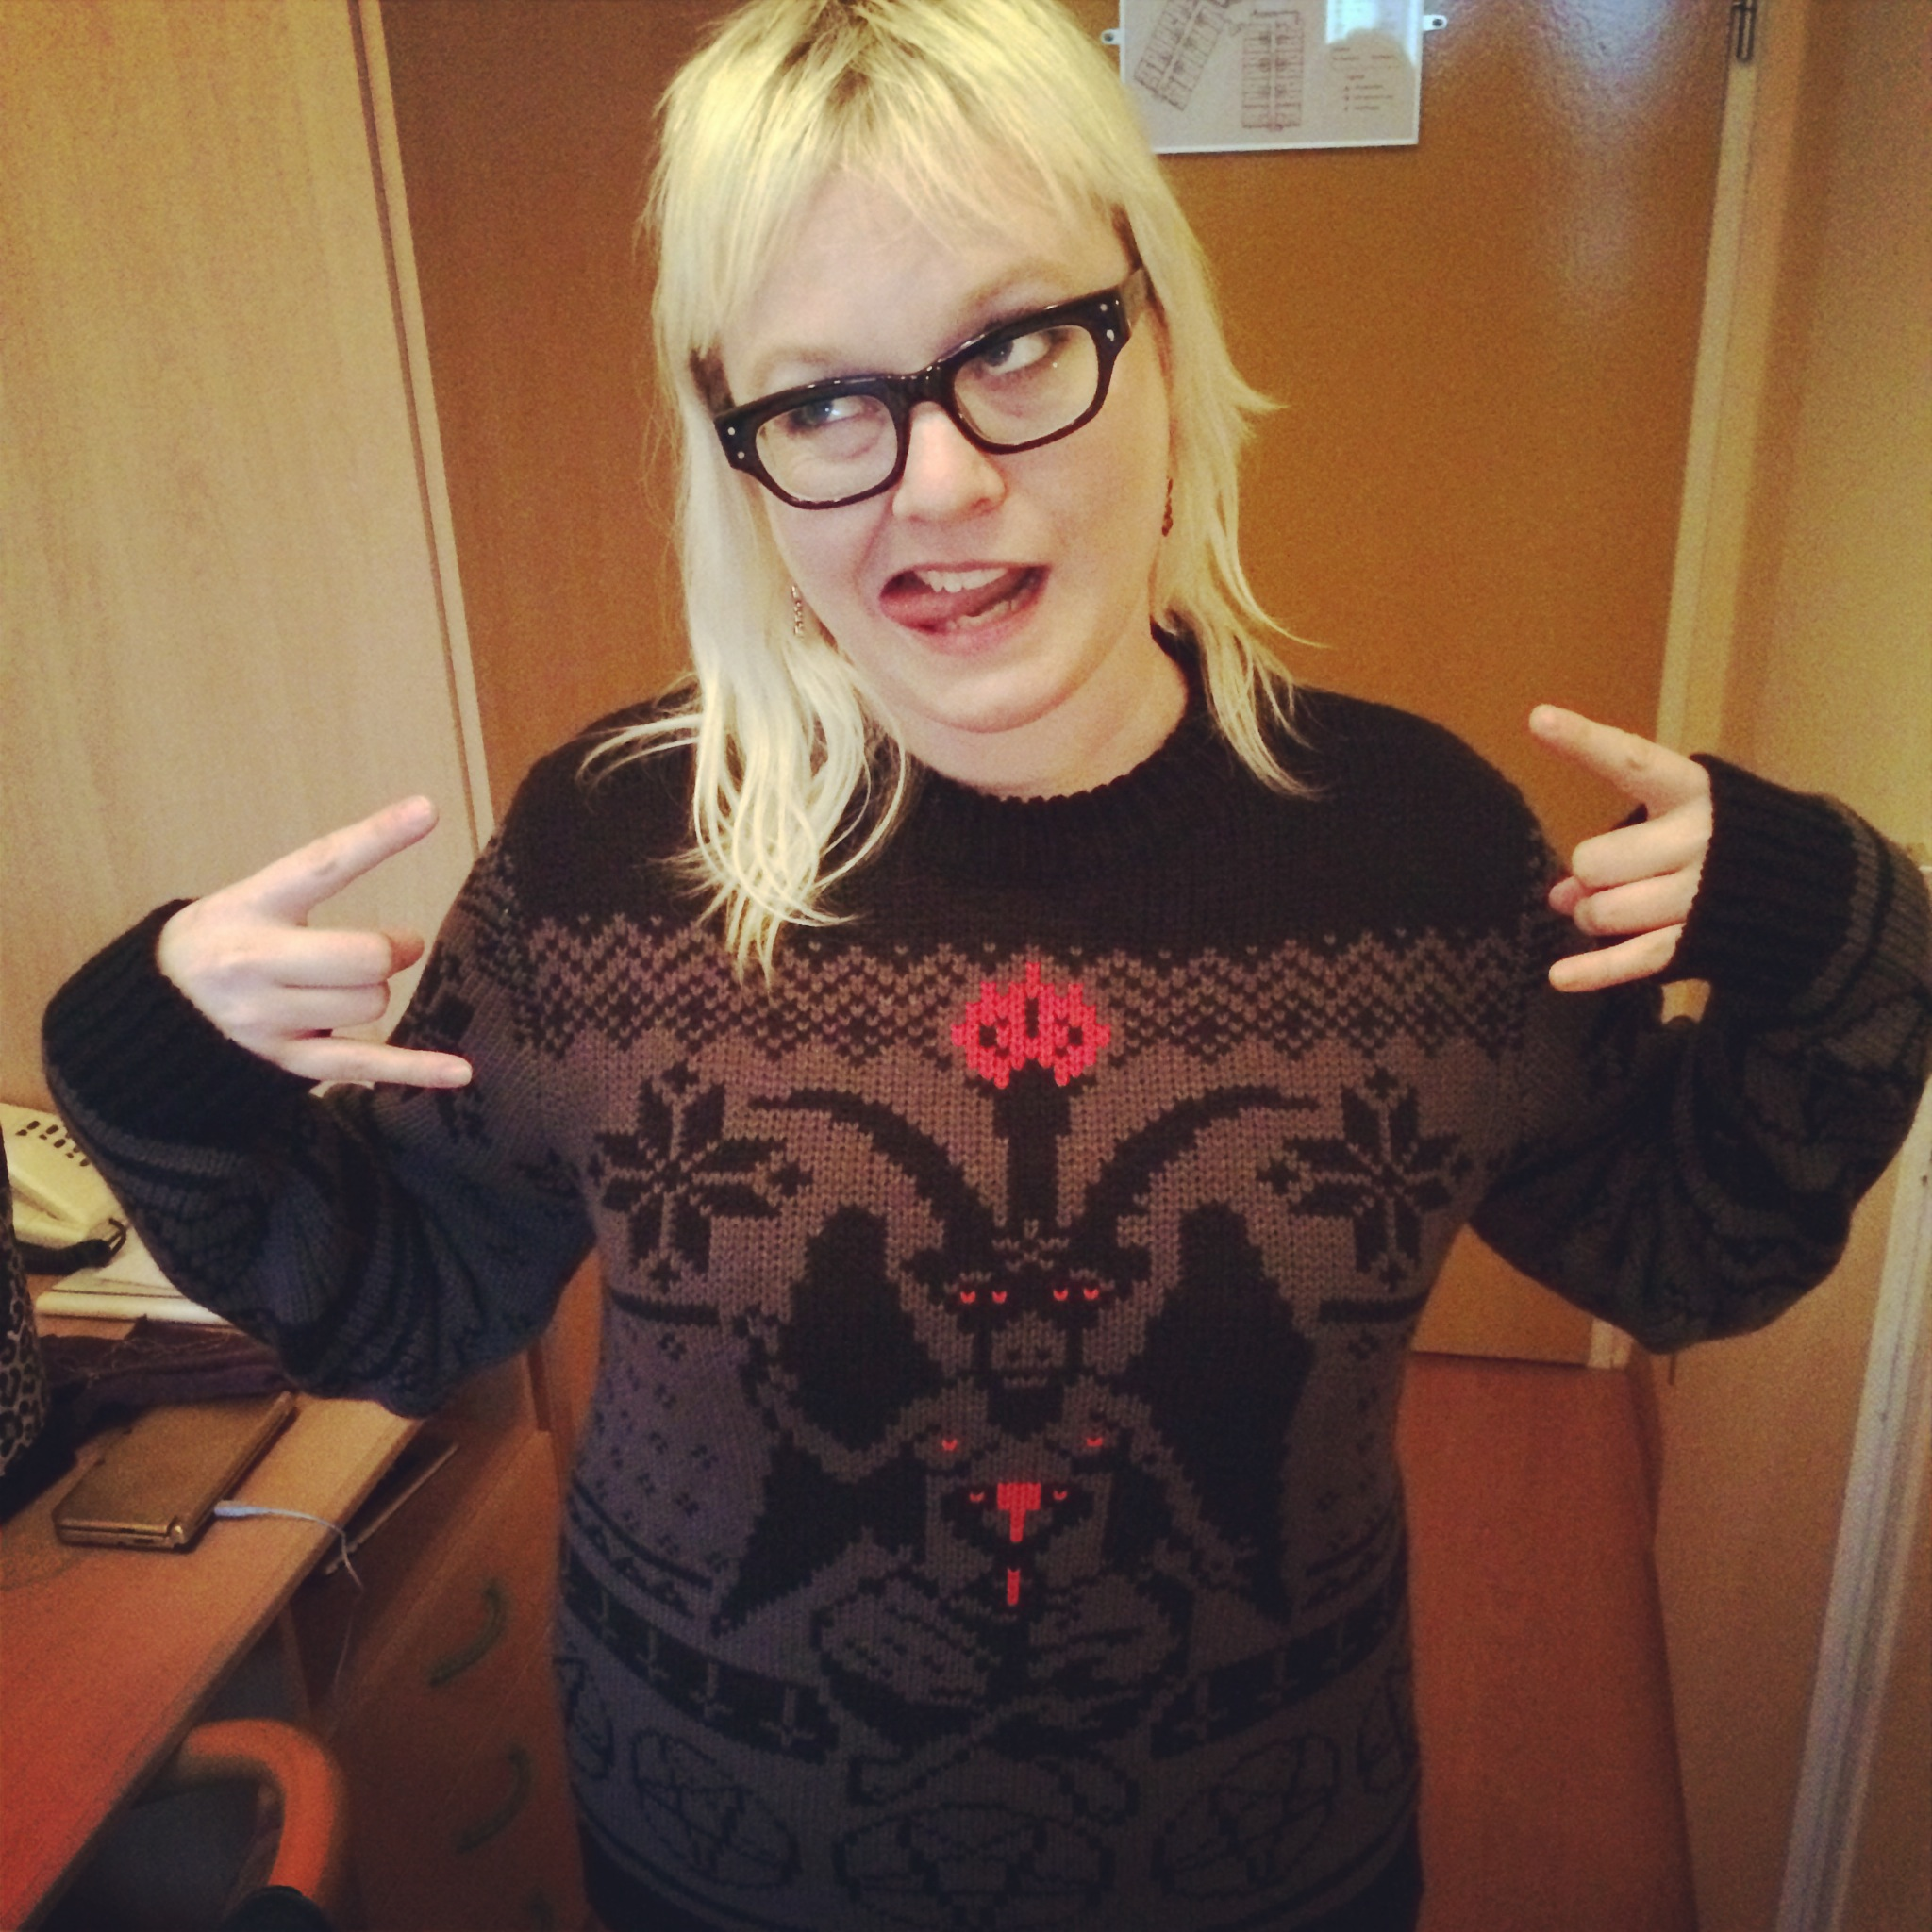 My Christmas sweater is the best Christmas sweater. I got it from Shredders Sweaters!